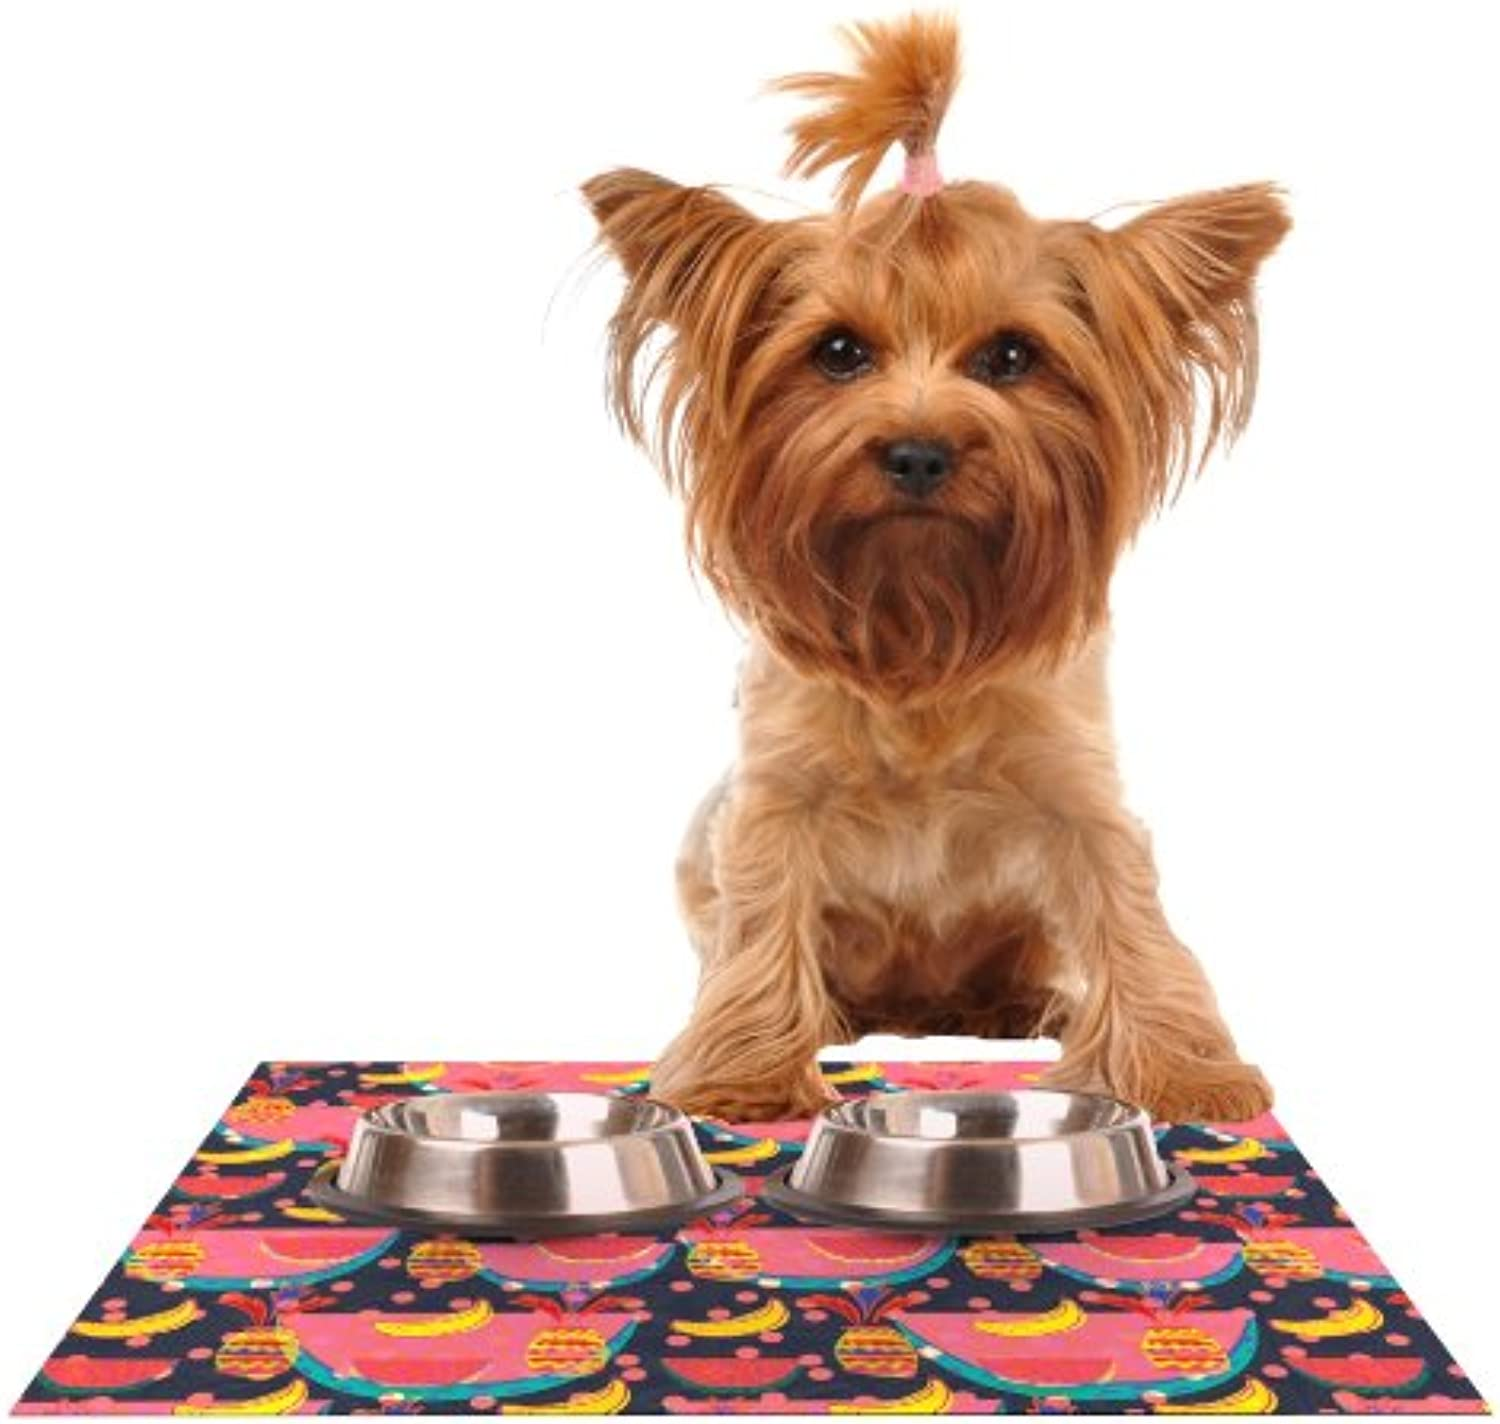 Kess InHouse Akwaflorell Yummy  Feeding Mat for Pet Bowl, 18 by 13Inch